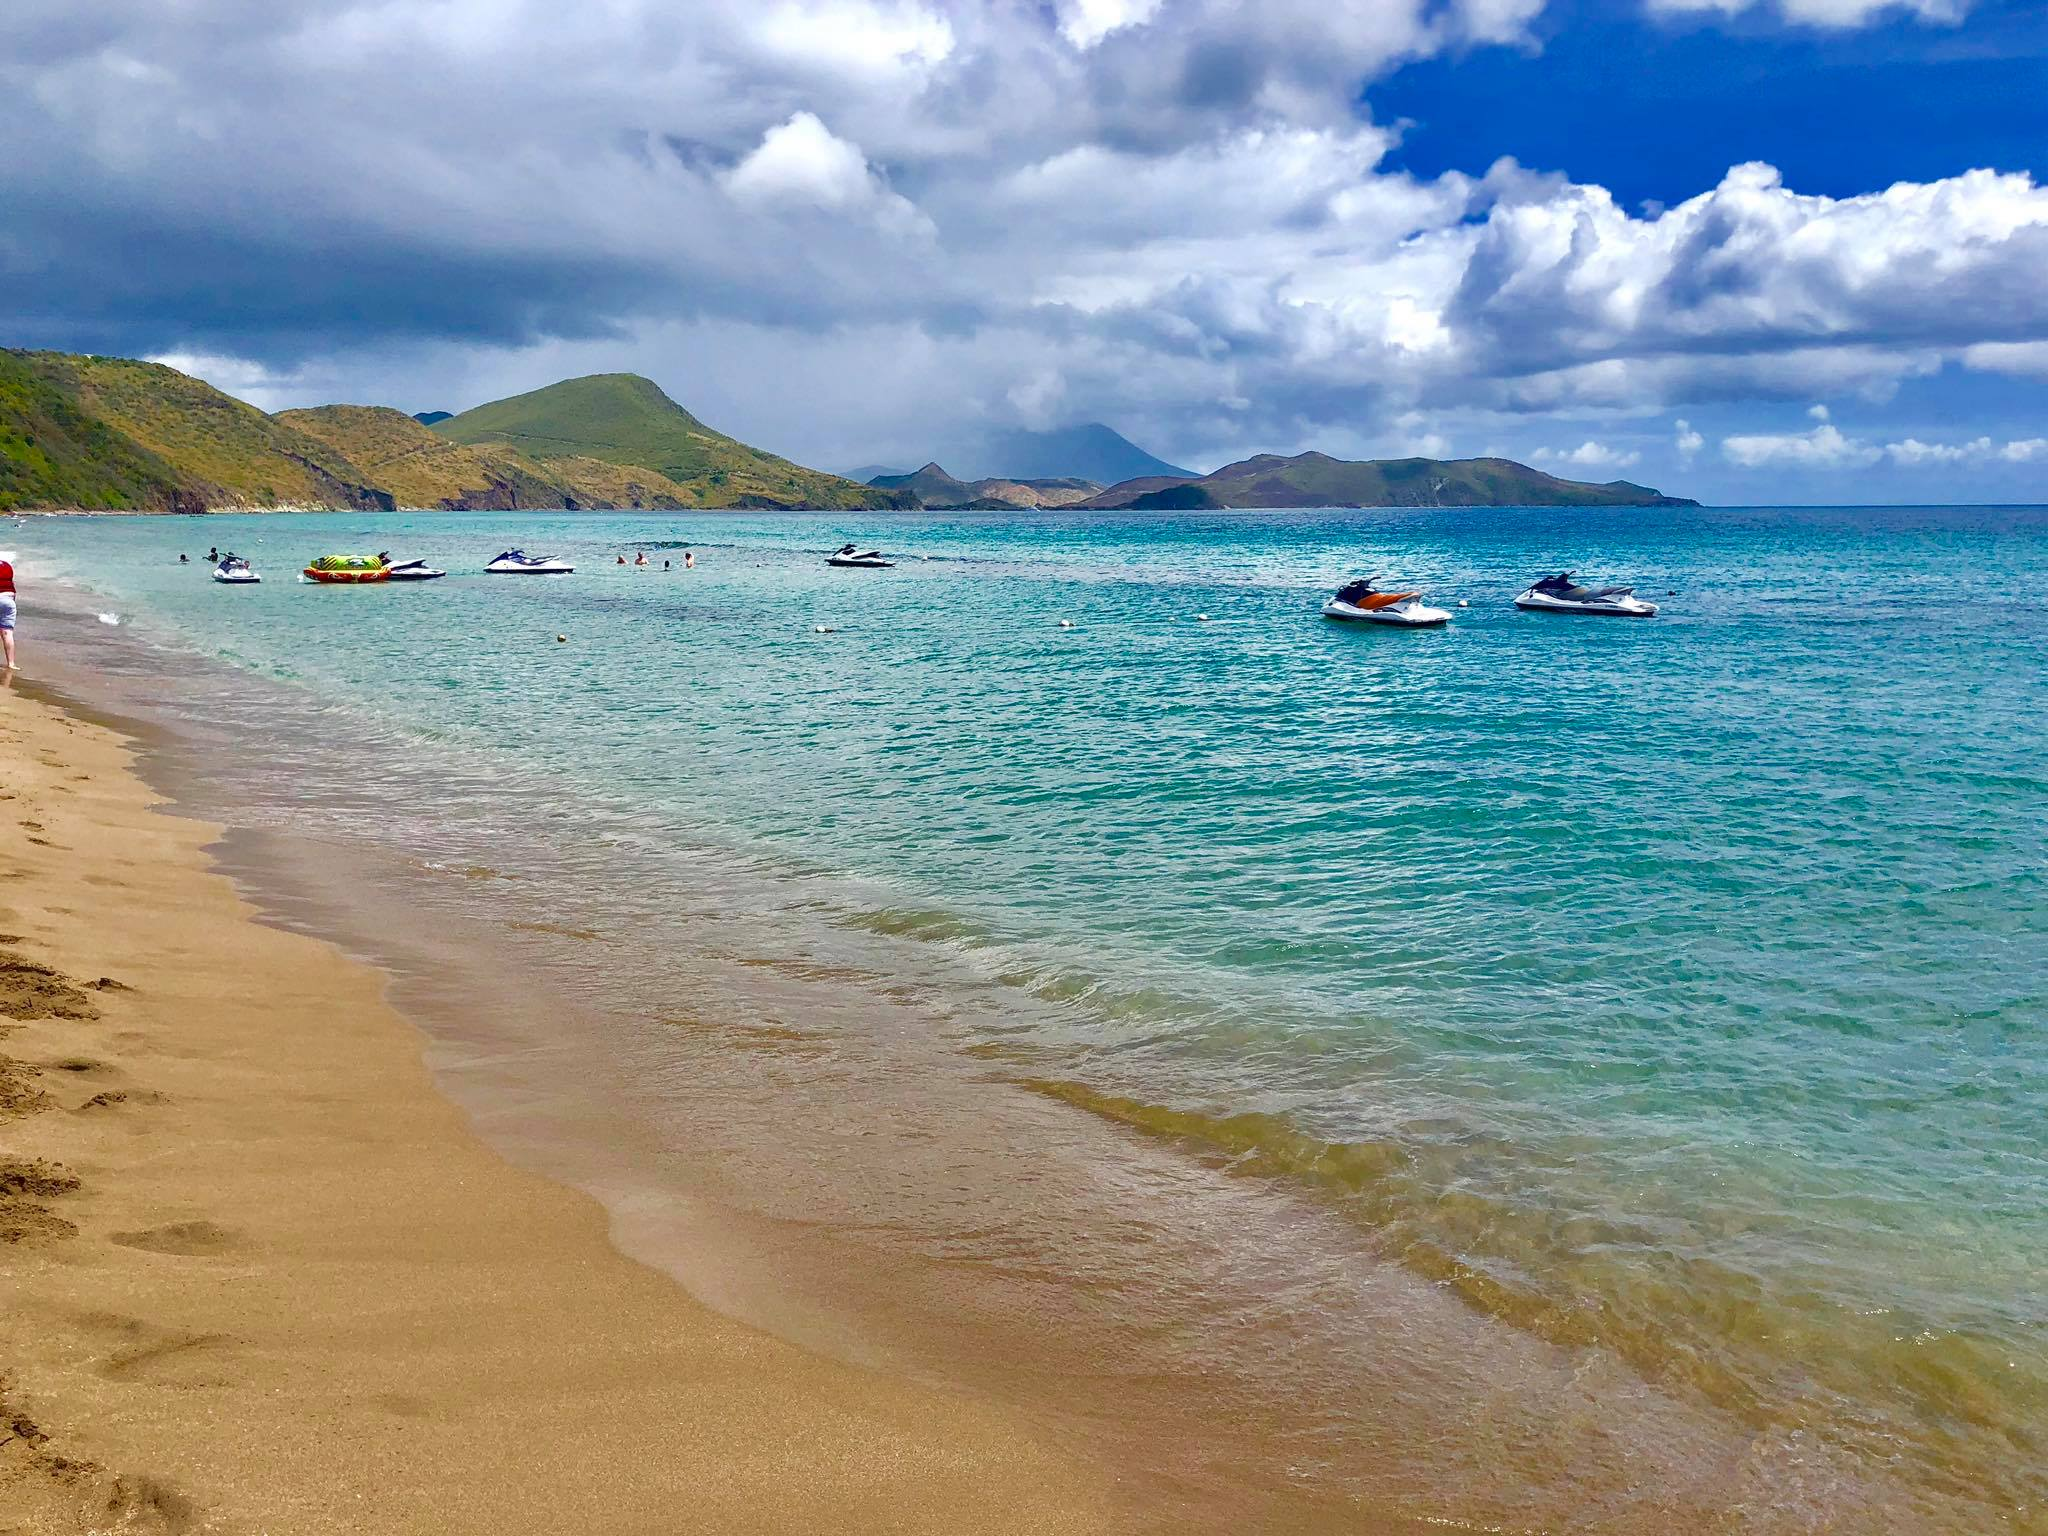 Kach Solo Travels in 2019 Hello from St Kitts18.jpg